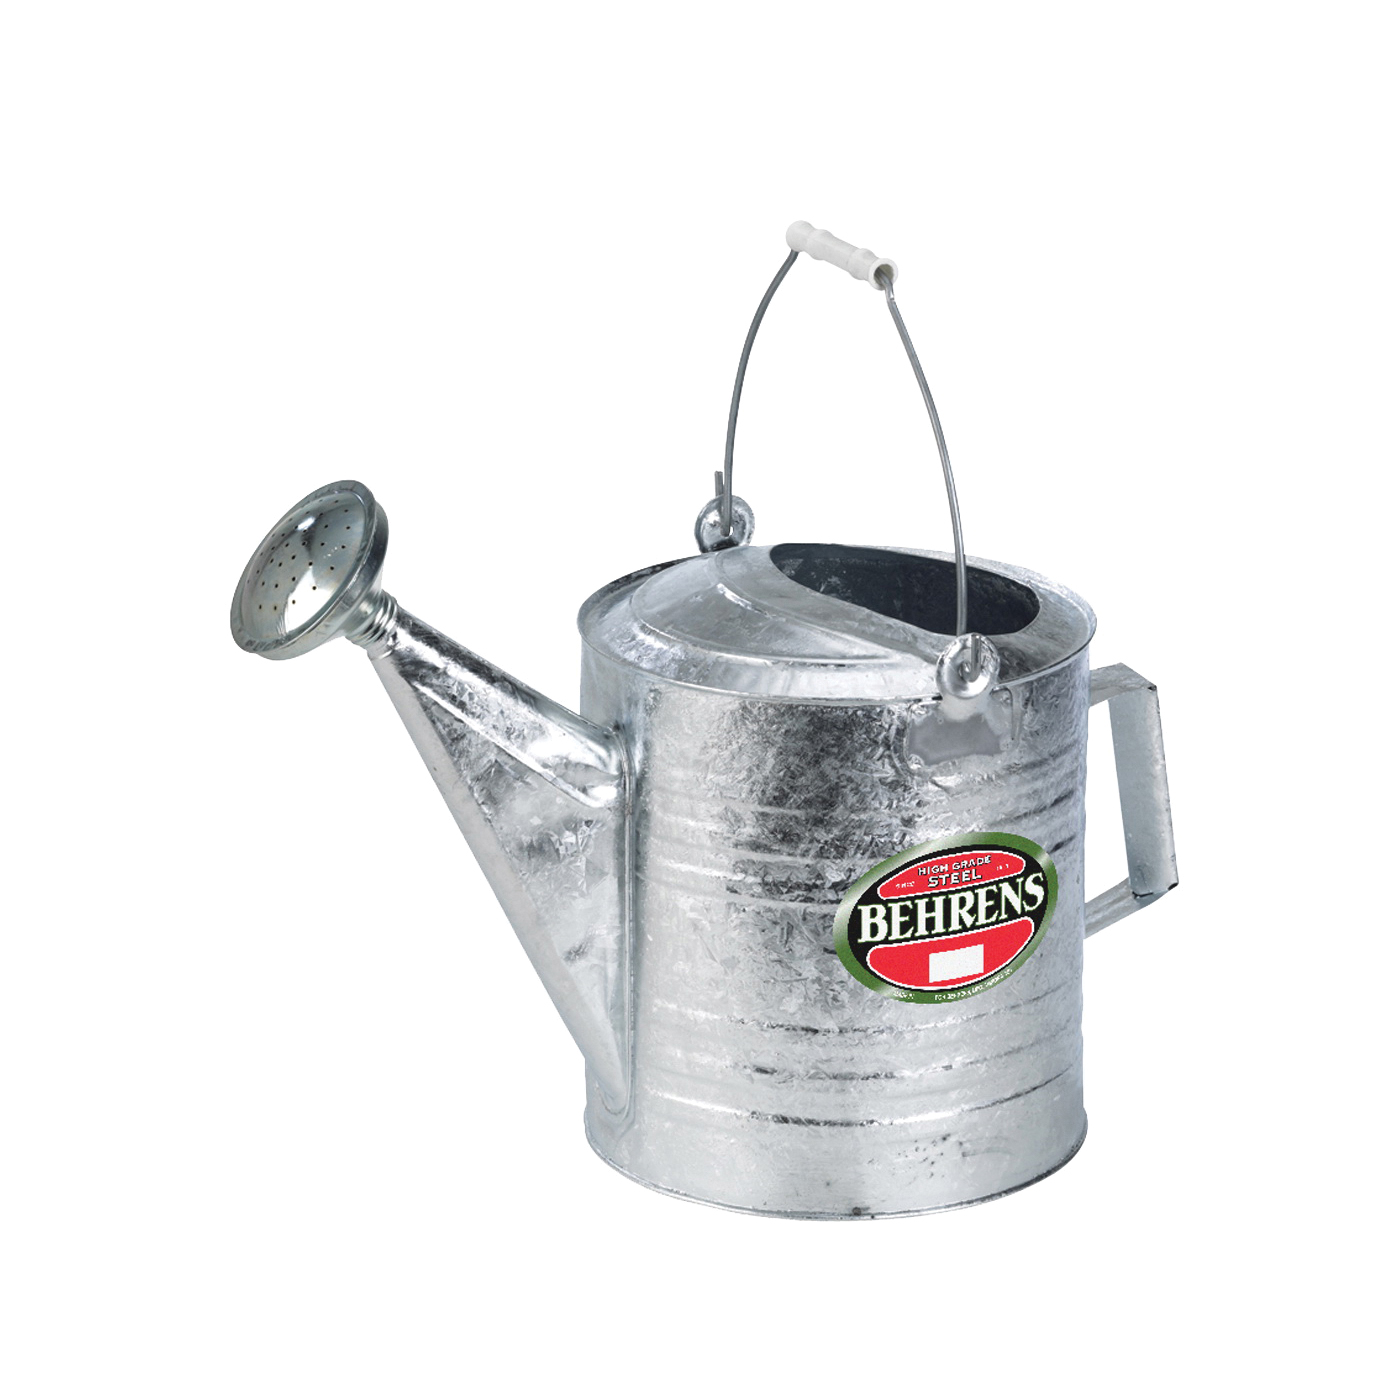 Picture of Behrens 208RH Watering Can, 2 gal Can, Steel